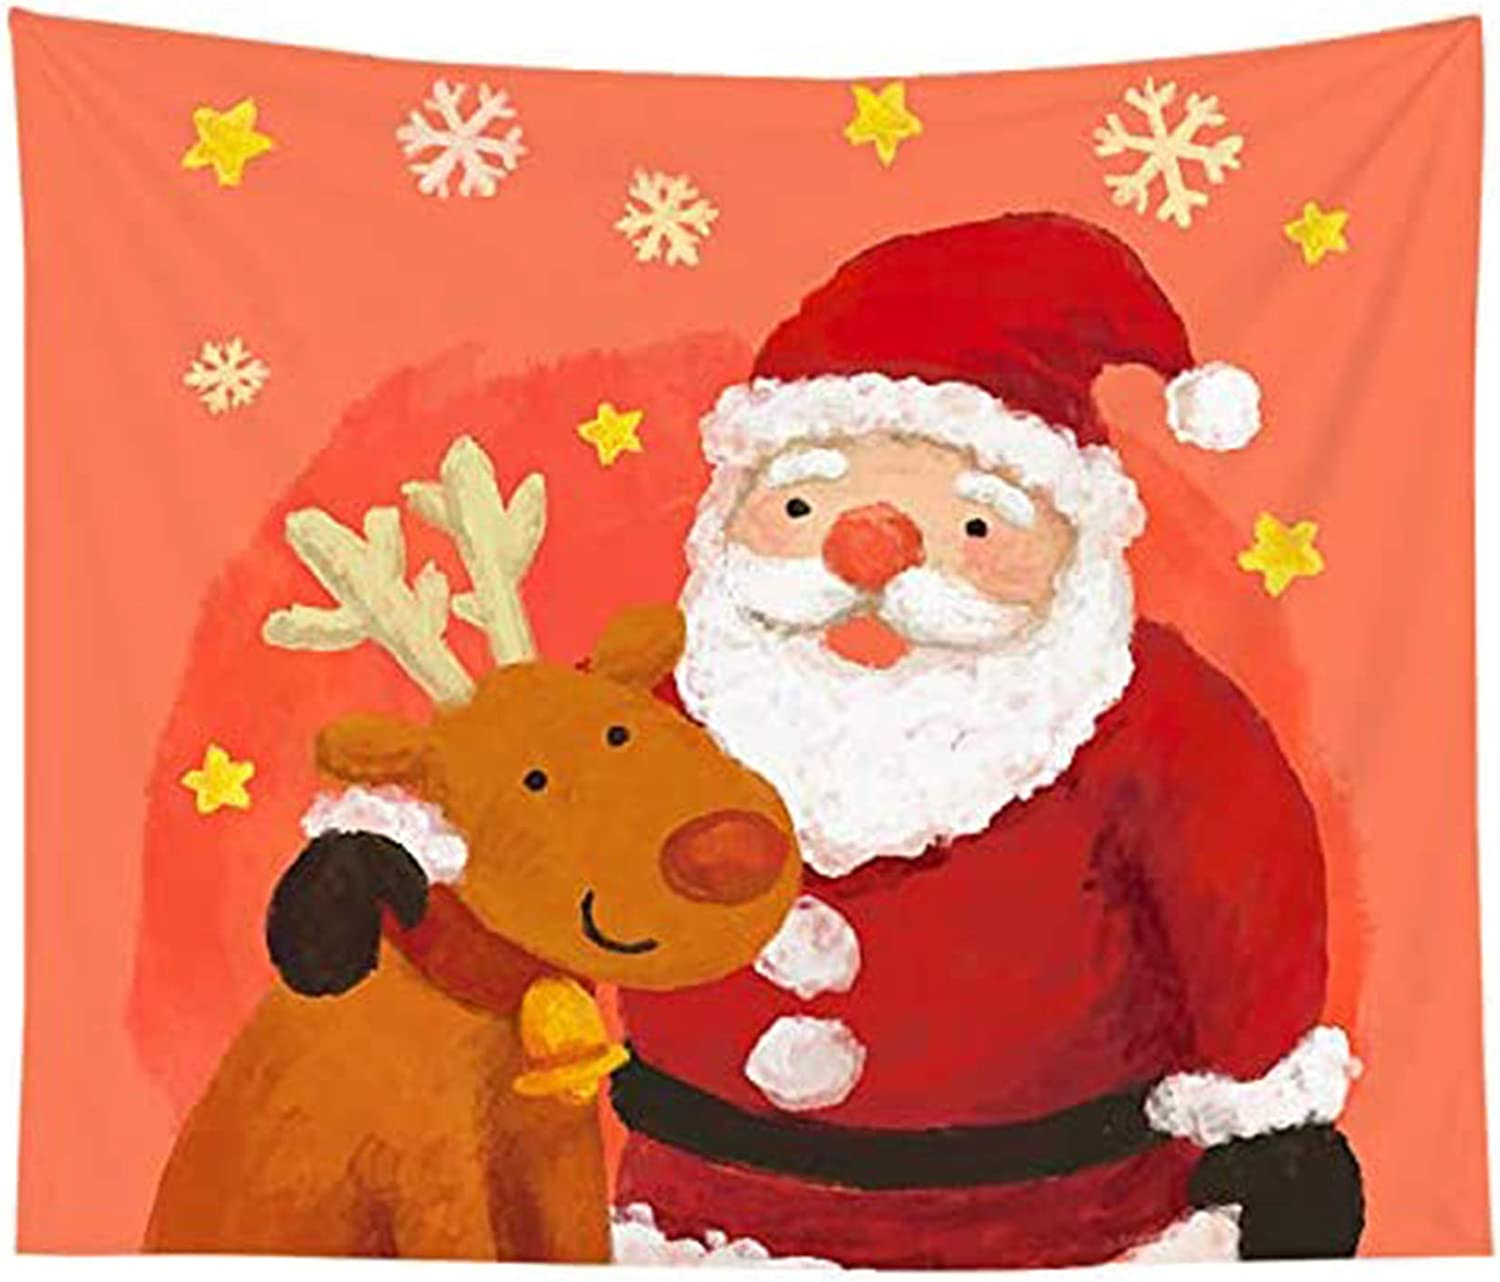 HVEST Christmas Tapestry Santa Claus and Cute Deer Wall Hanging Tapestries,59Wx51H Inches Watercolor Painting Tapestry for Bedroom Living Room Dorm Xmas Holiday Party Teen Room Indie Decor Blanket